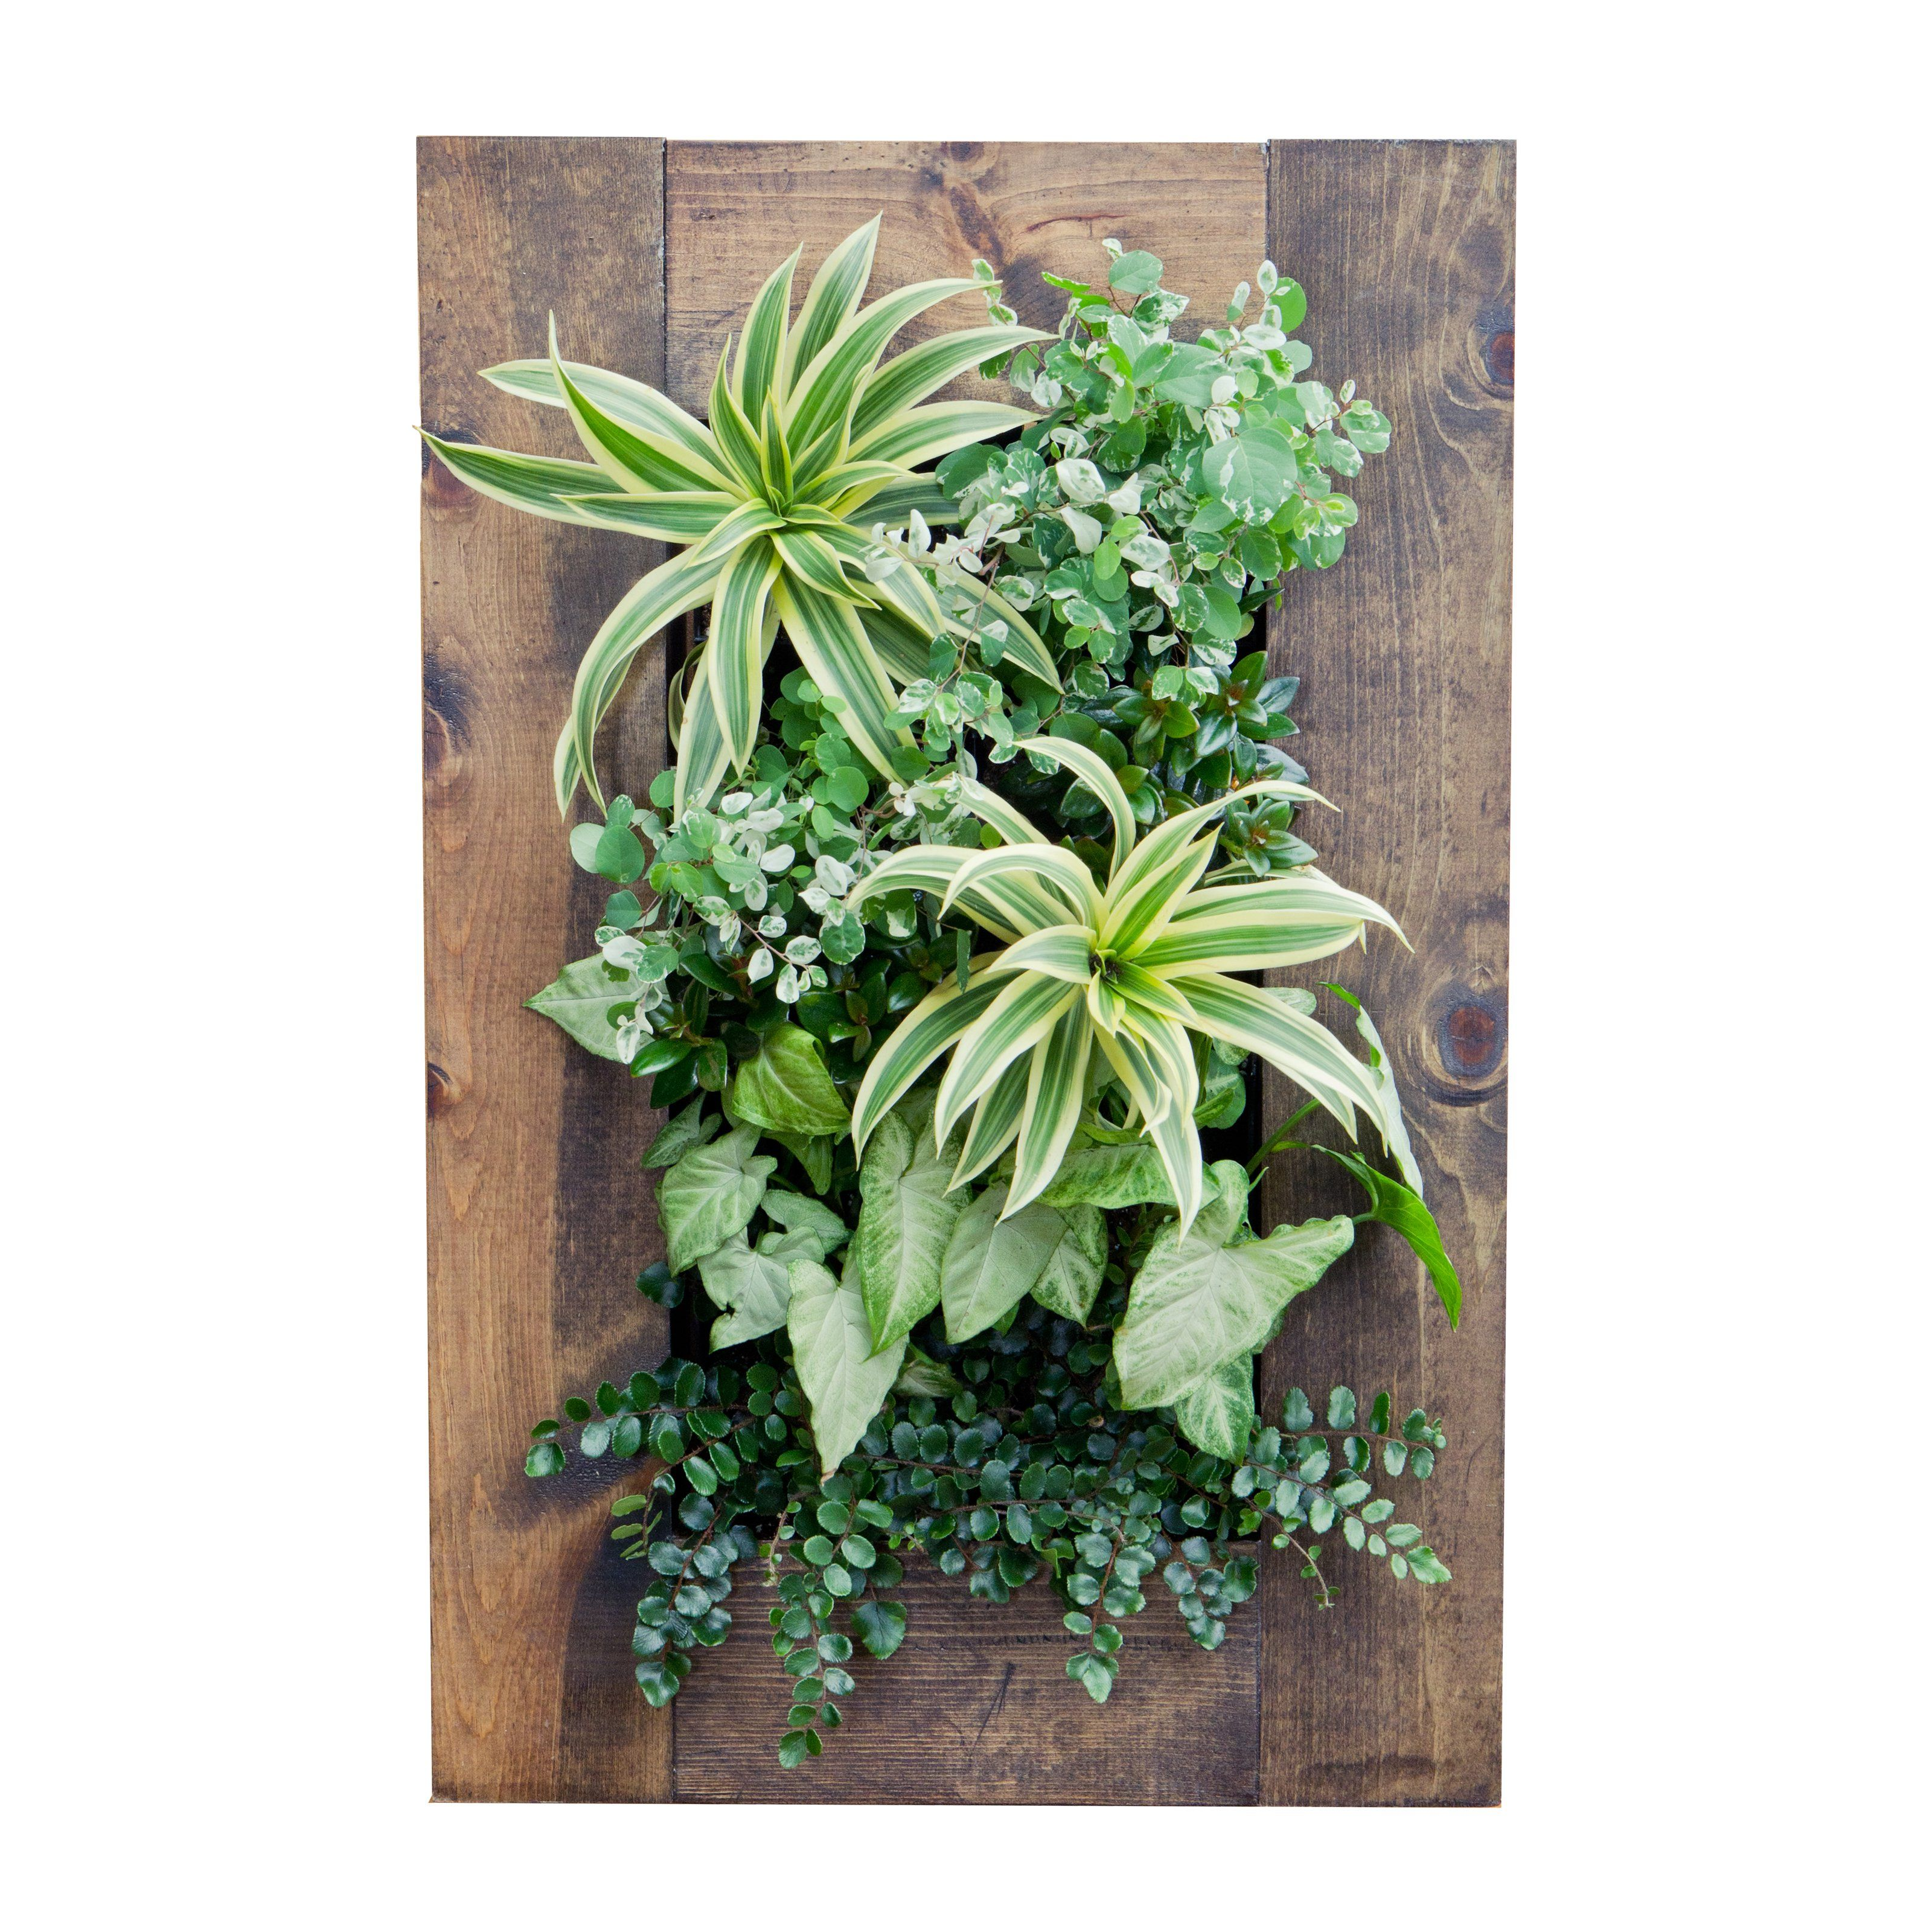 Grovert Mc Living Wall Planter Hang A Piece Of Art On Your Walls With The